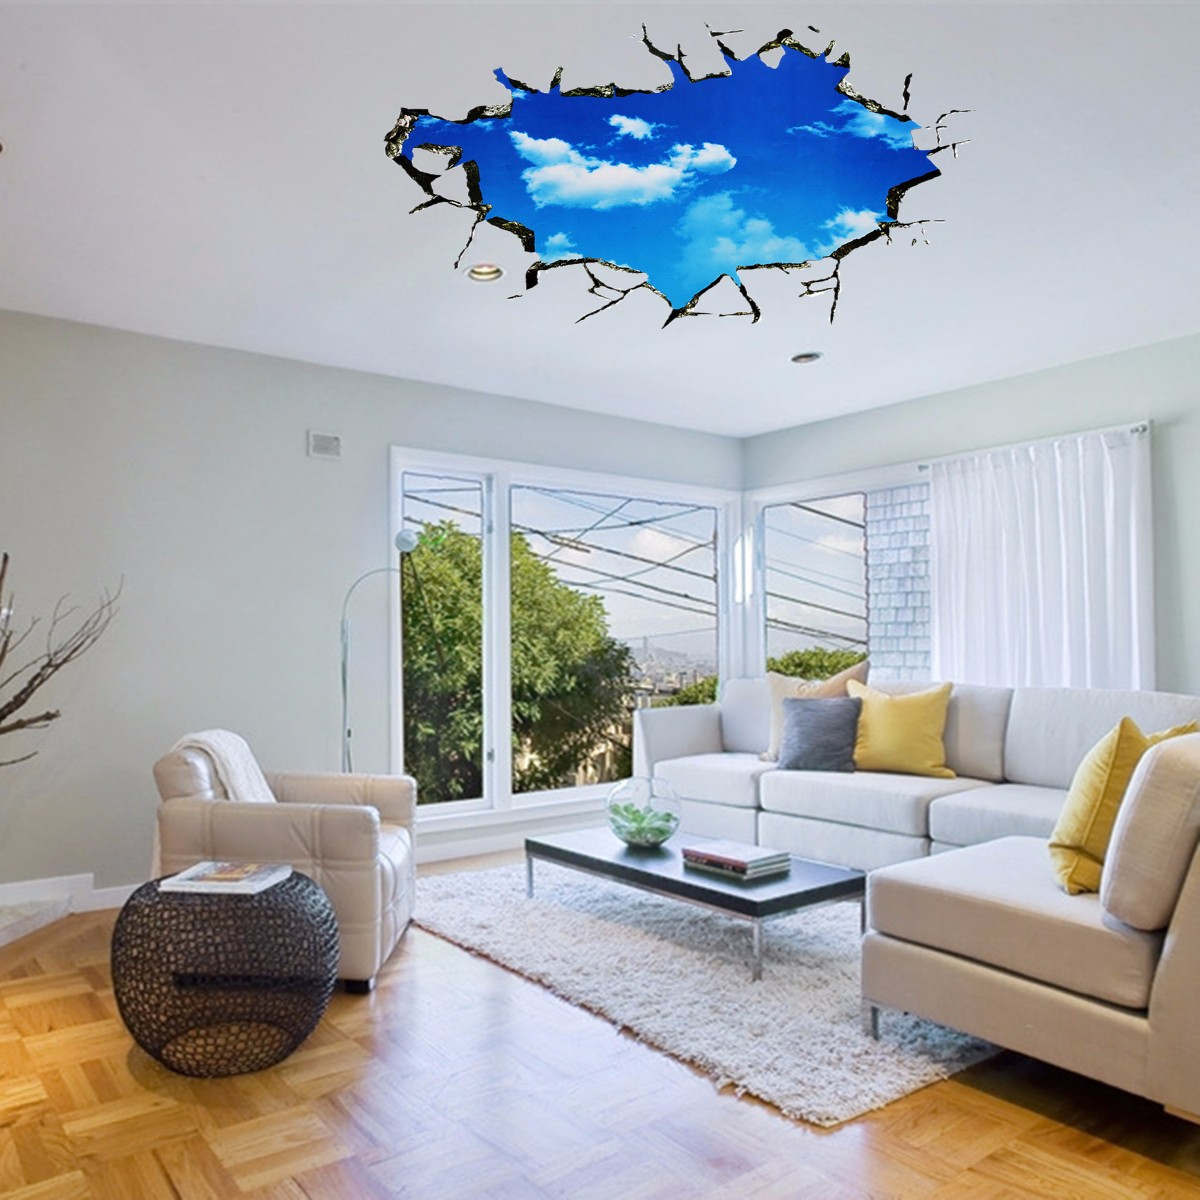 Pag blue sky 3d wall decals sticker ceiling hole sticker for Sticker mural 3d